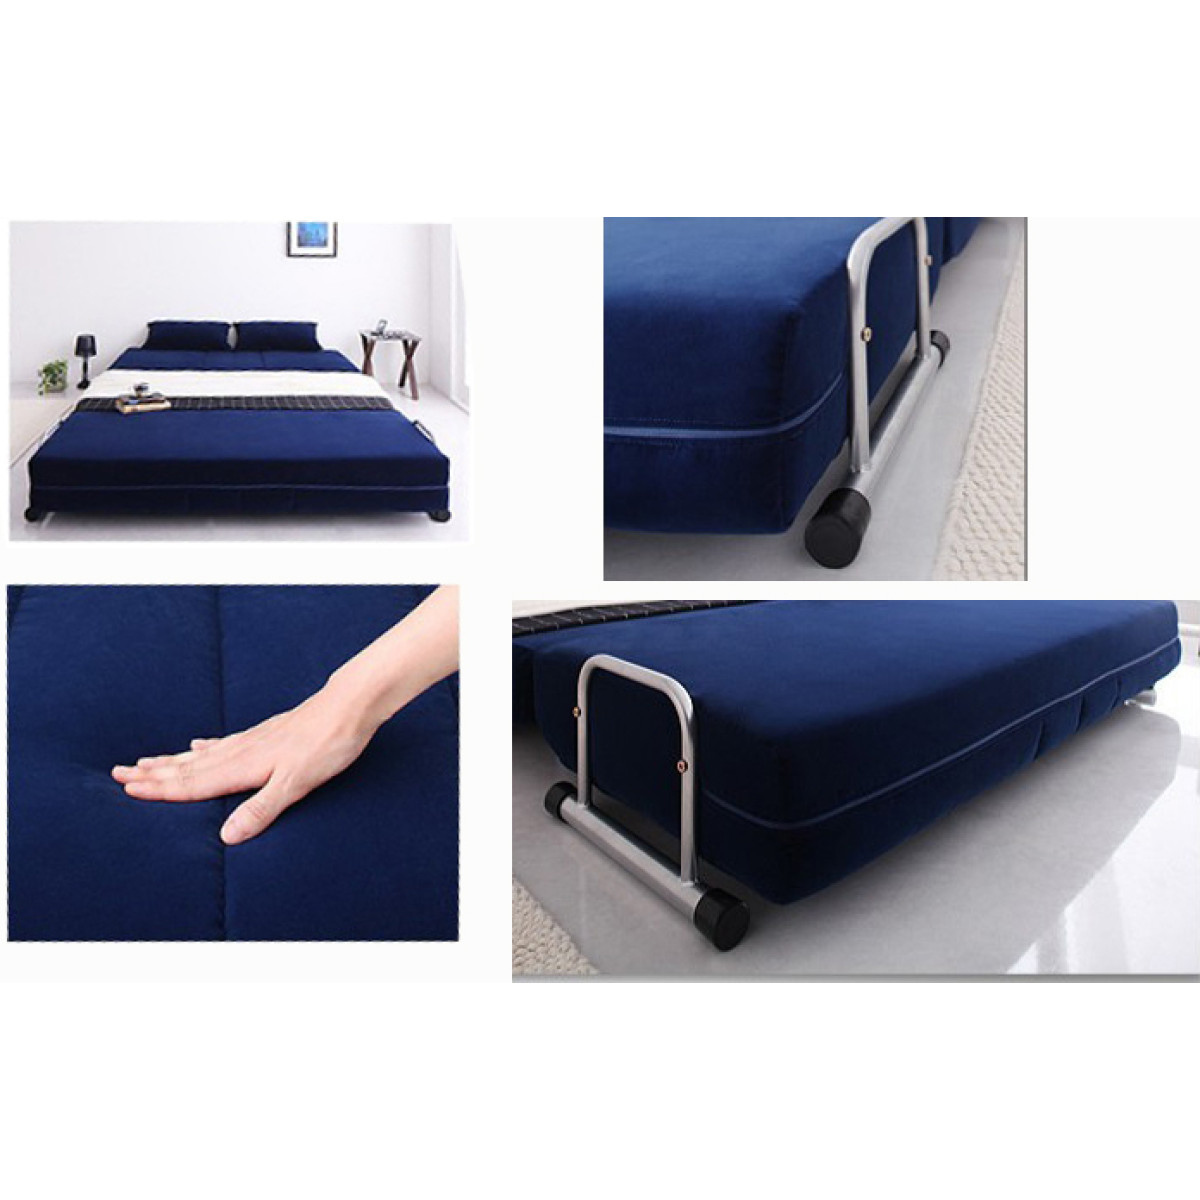 Rolly Sofa Bed Fabric Blue Furniture Home Decor Fortytwo